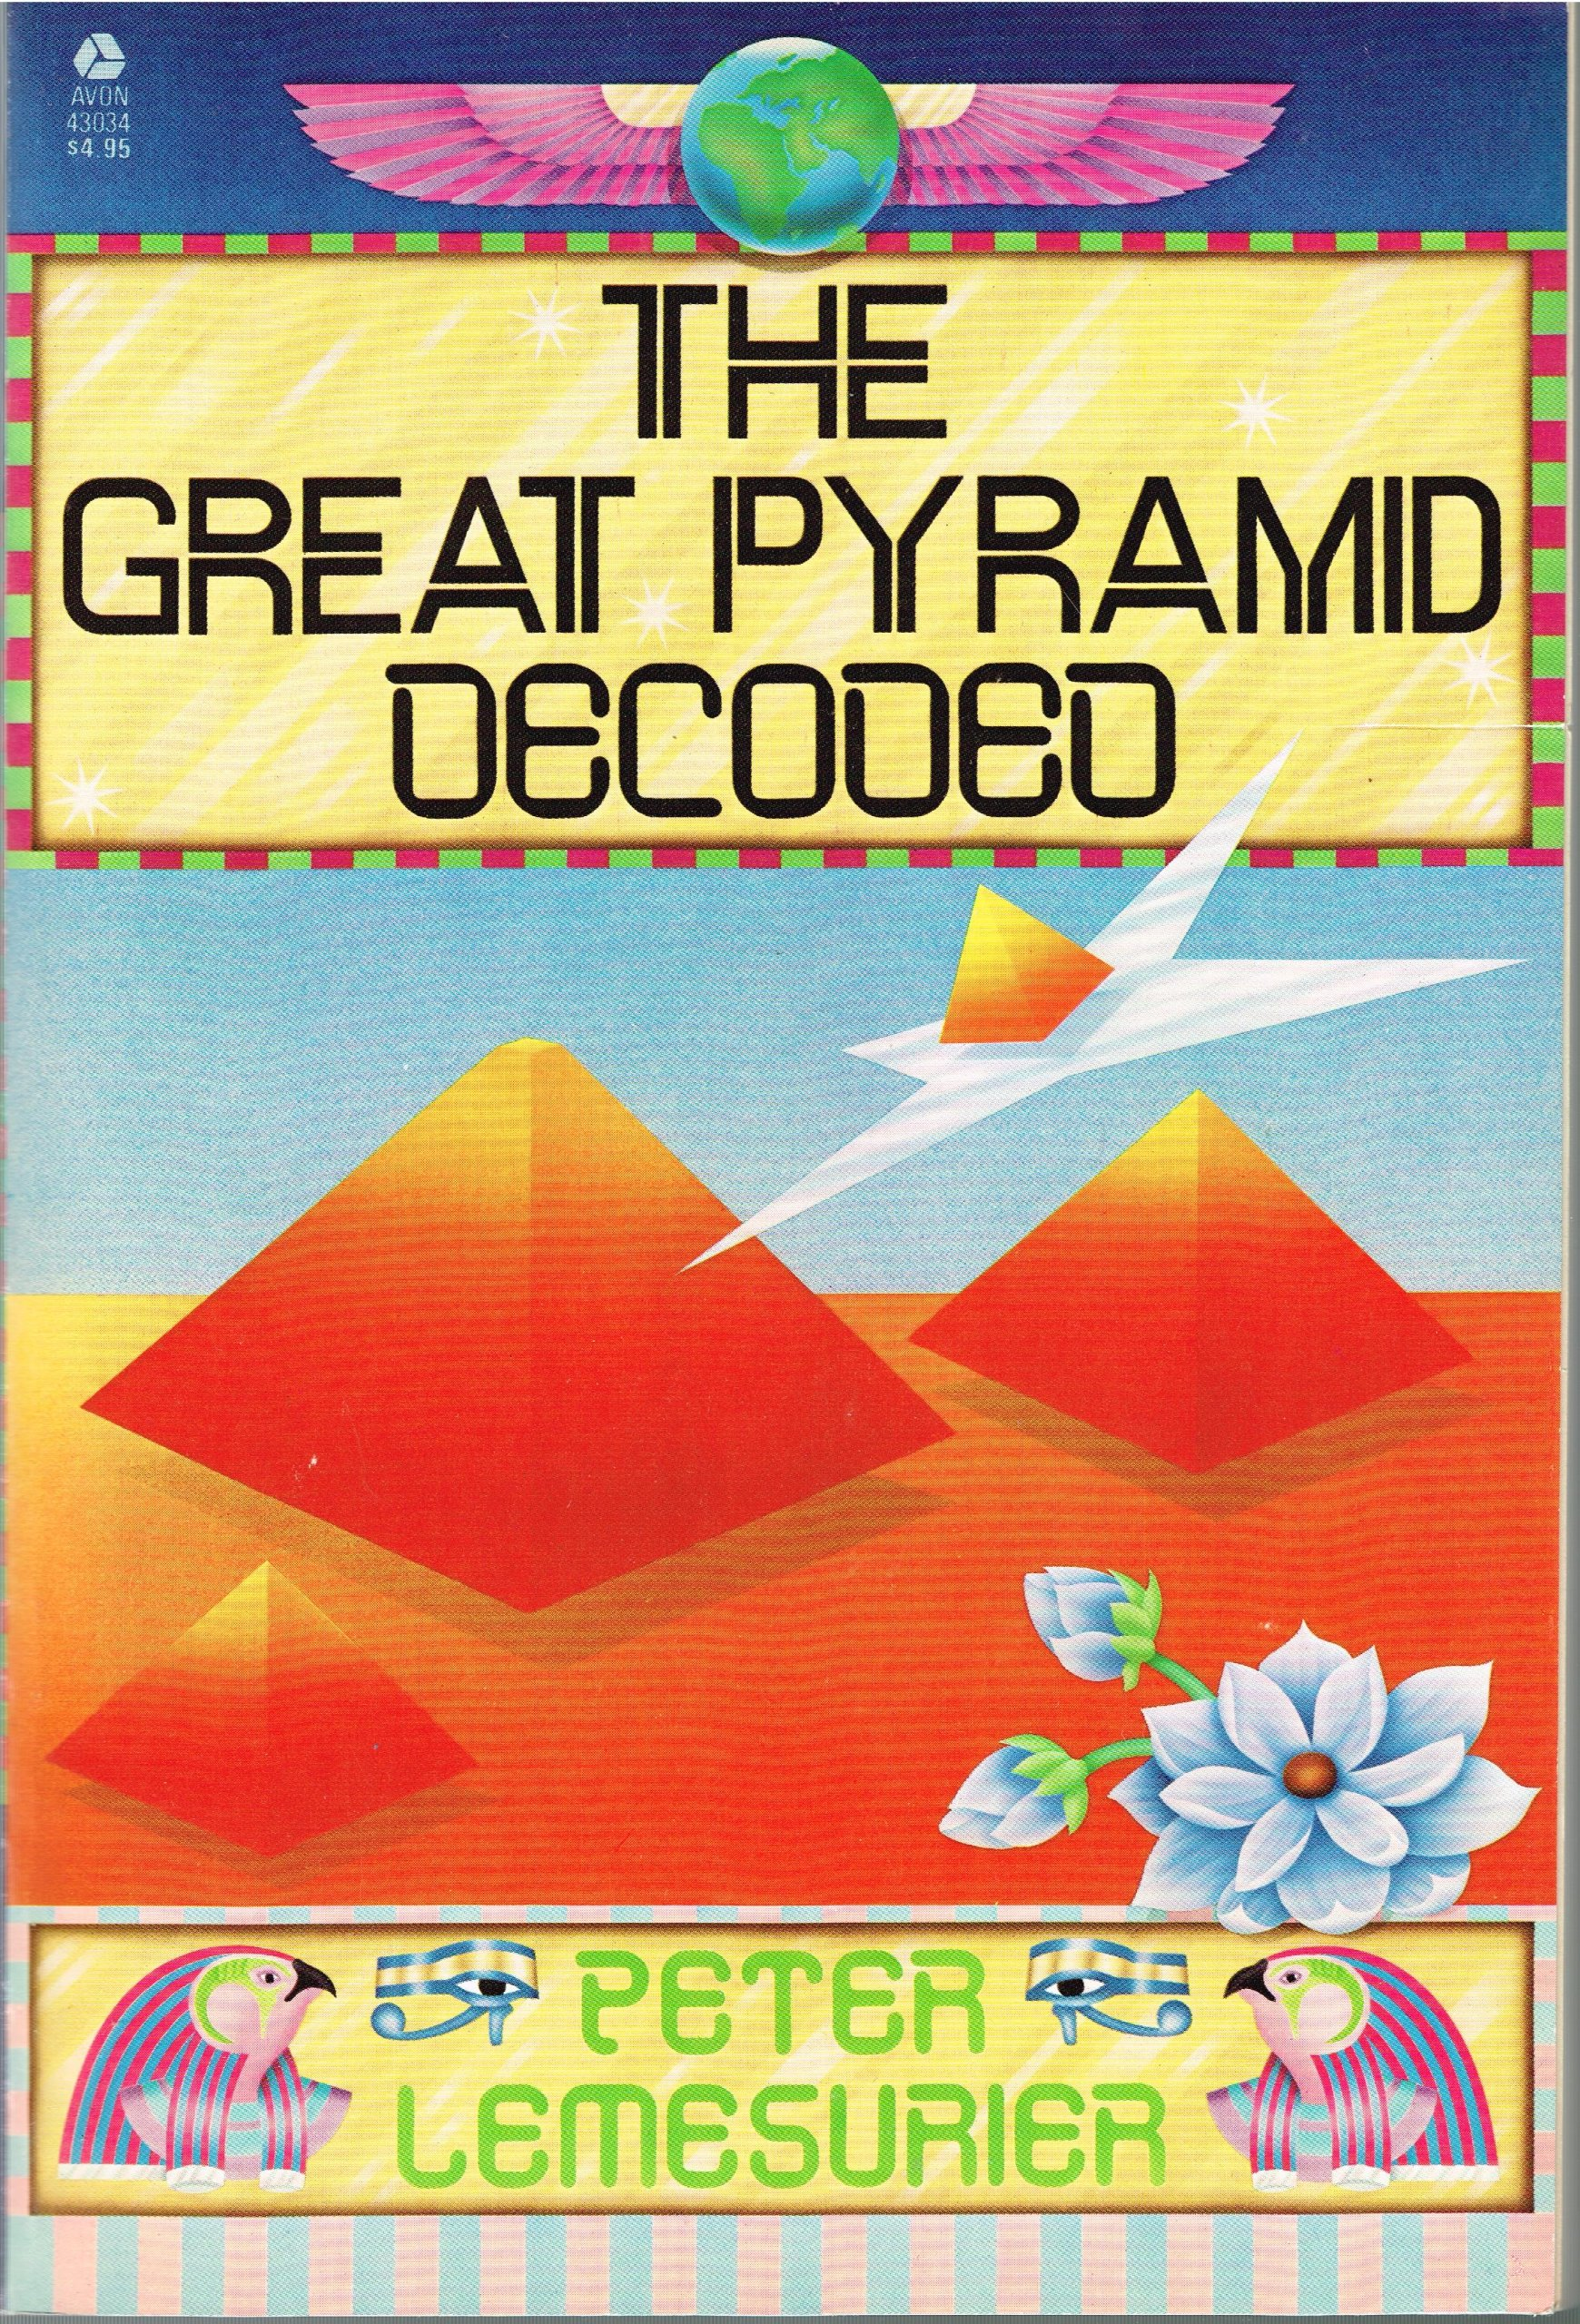 The great pyramid decoded peter lemesurier 9780380430345 amazon the great pyramid decoded peter lemesurier 9780380430345 amazon books malvernweather Images